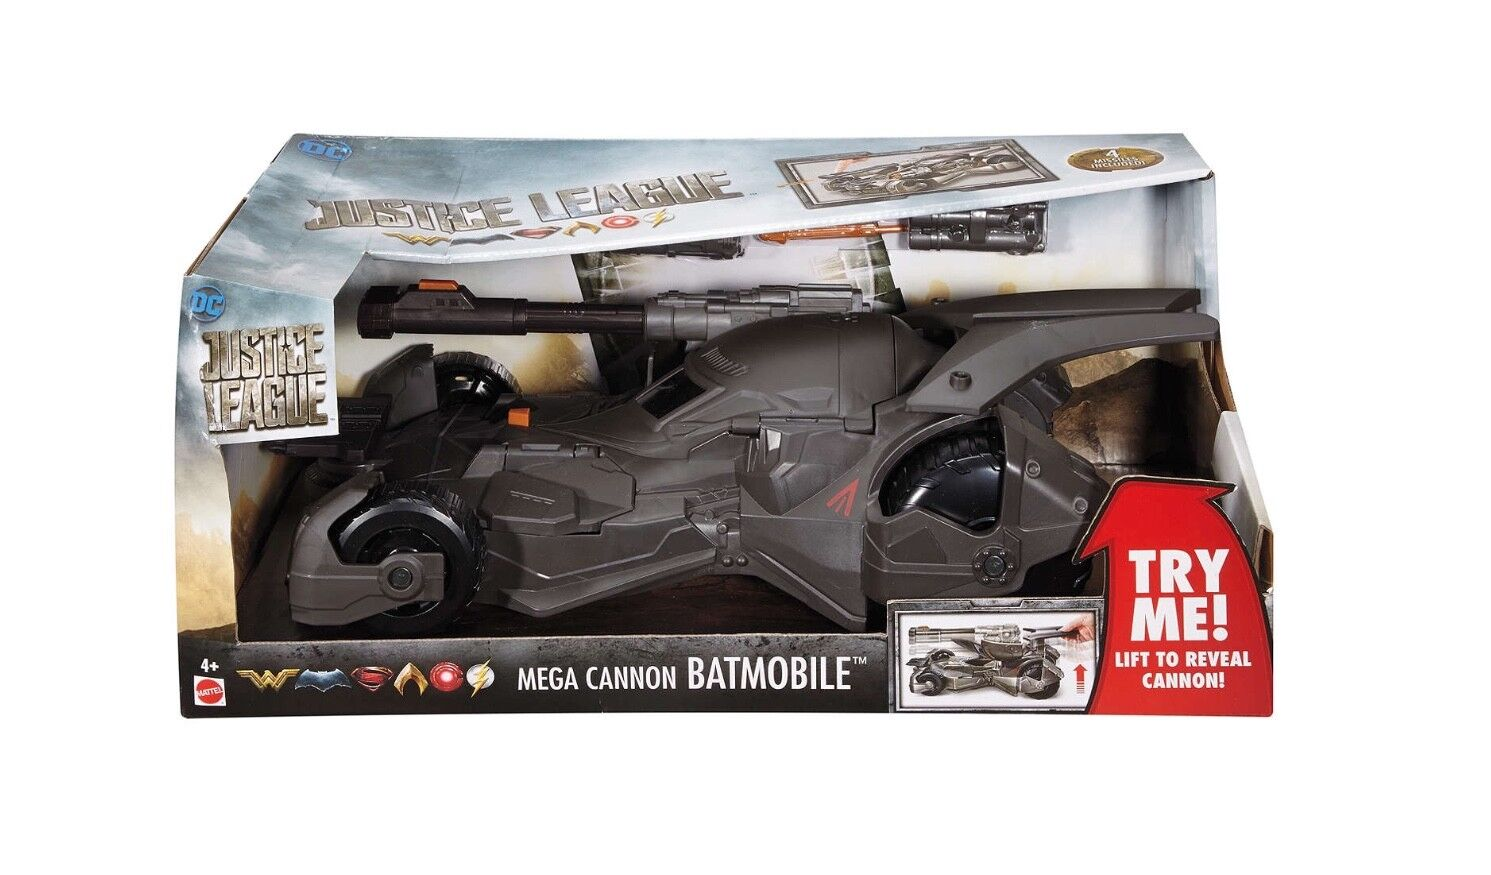 DC Justice League Mega Cannon Batmobile Vehicle Ages 4+ Toy Car Tank Batman Play